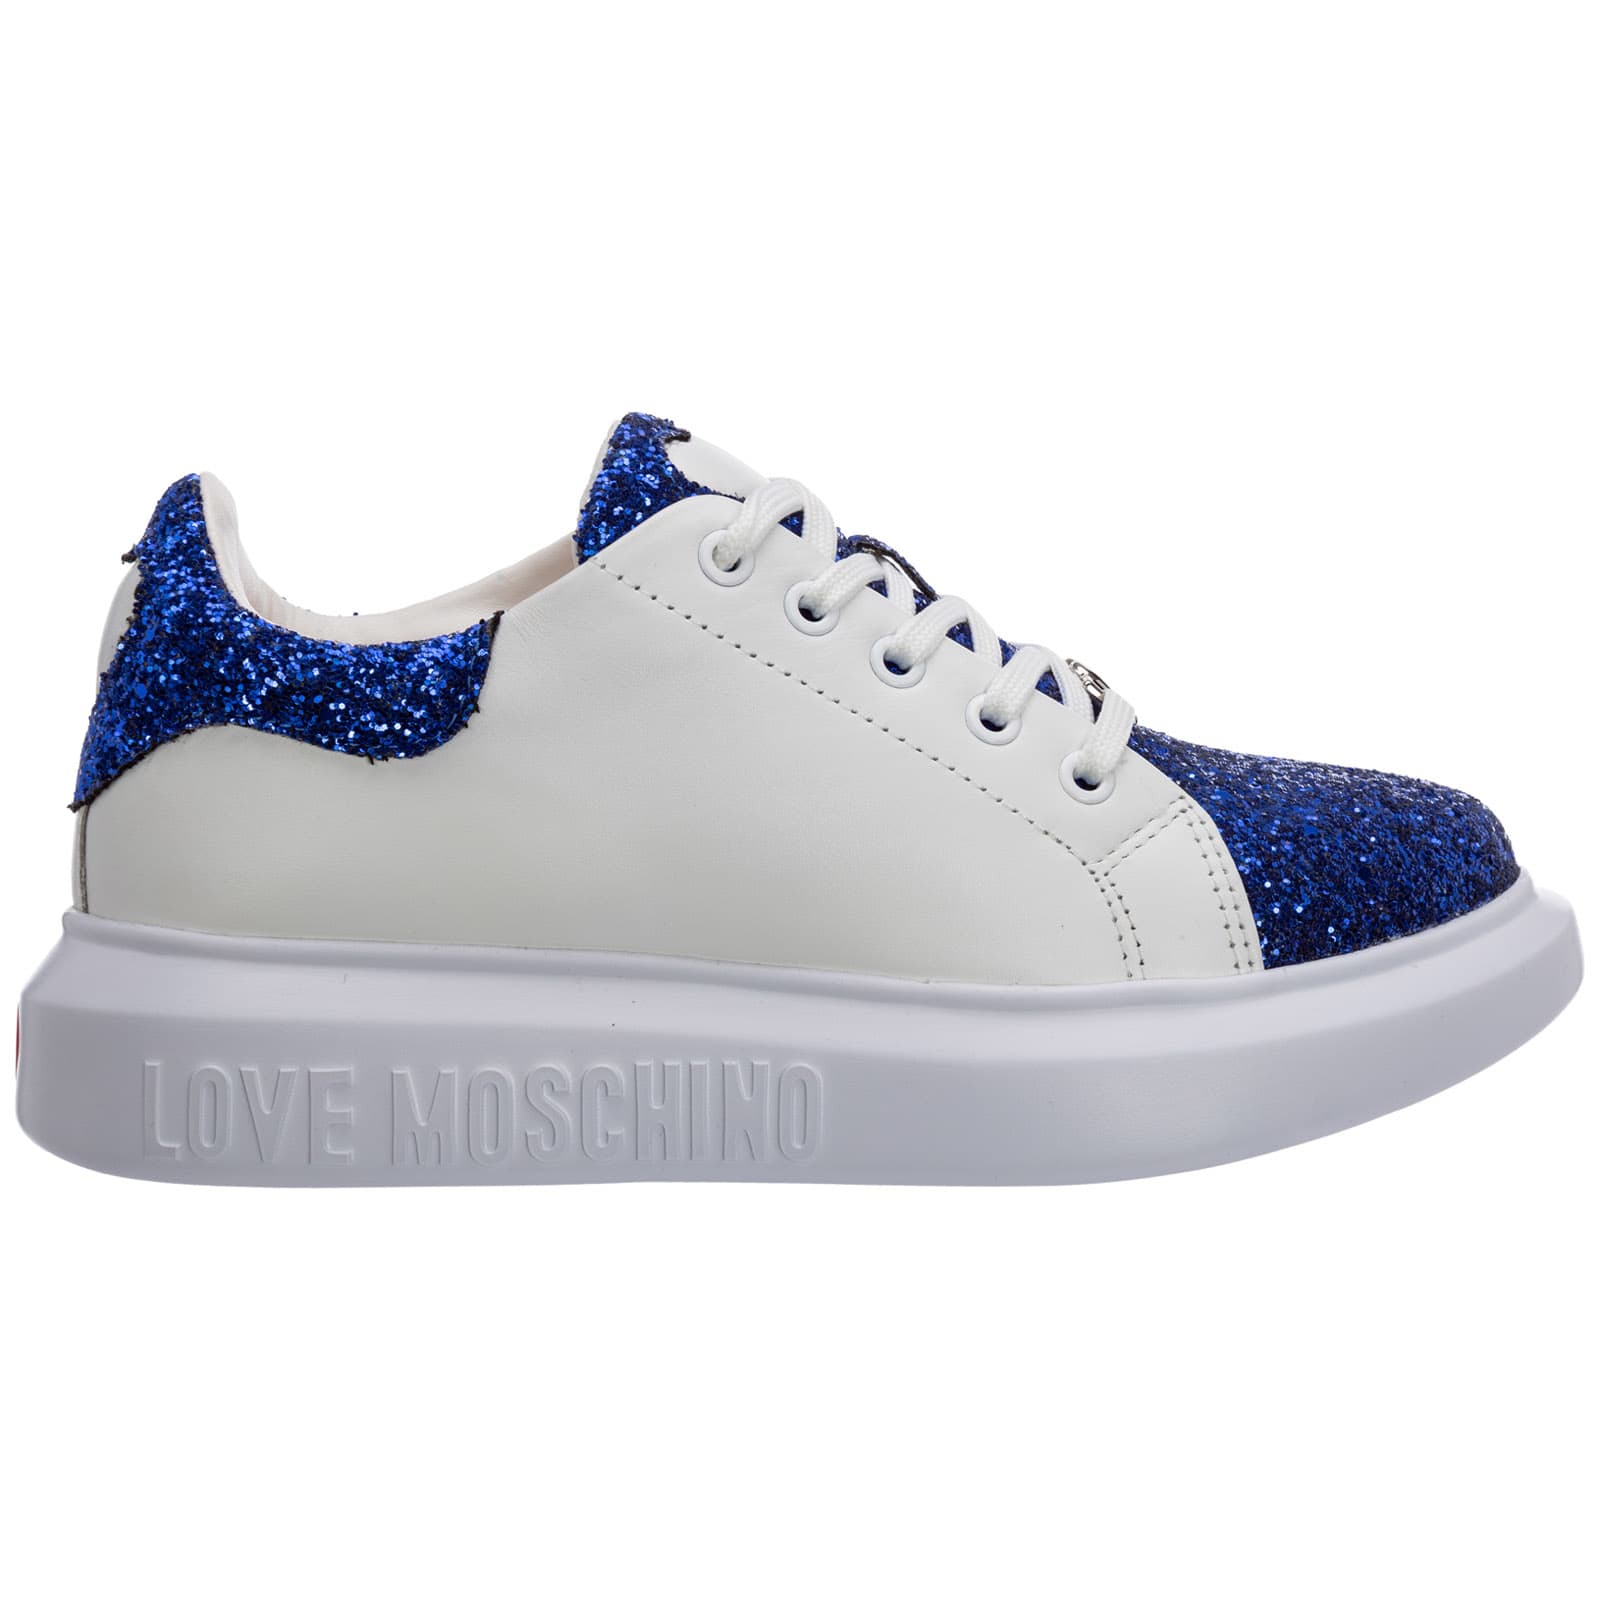 Buy Love Moschino Pure Star Sneakers online, shop Love Moschino shoes with free shipping